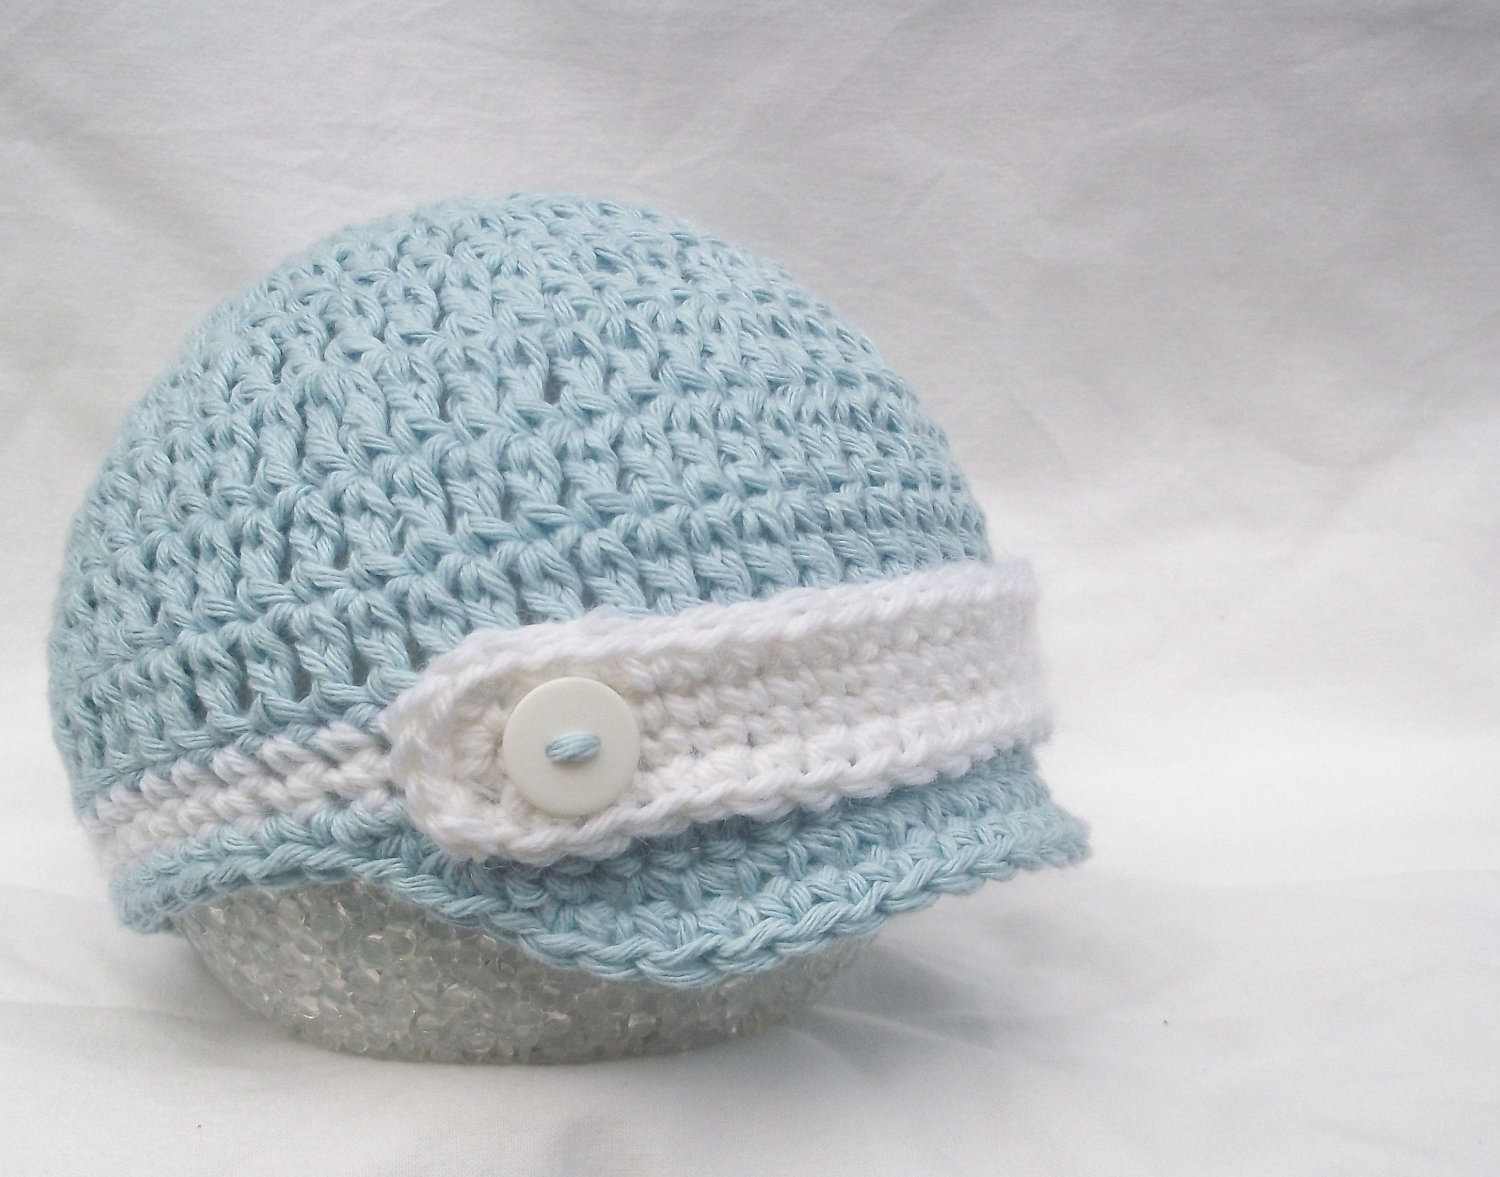 Crochet Patterns Infant Hats : Baby hat - Crochet baby hat - Newborn baby hat- Crochet baby boy hat ...